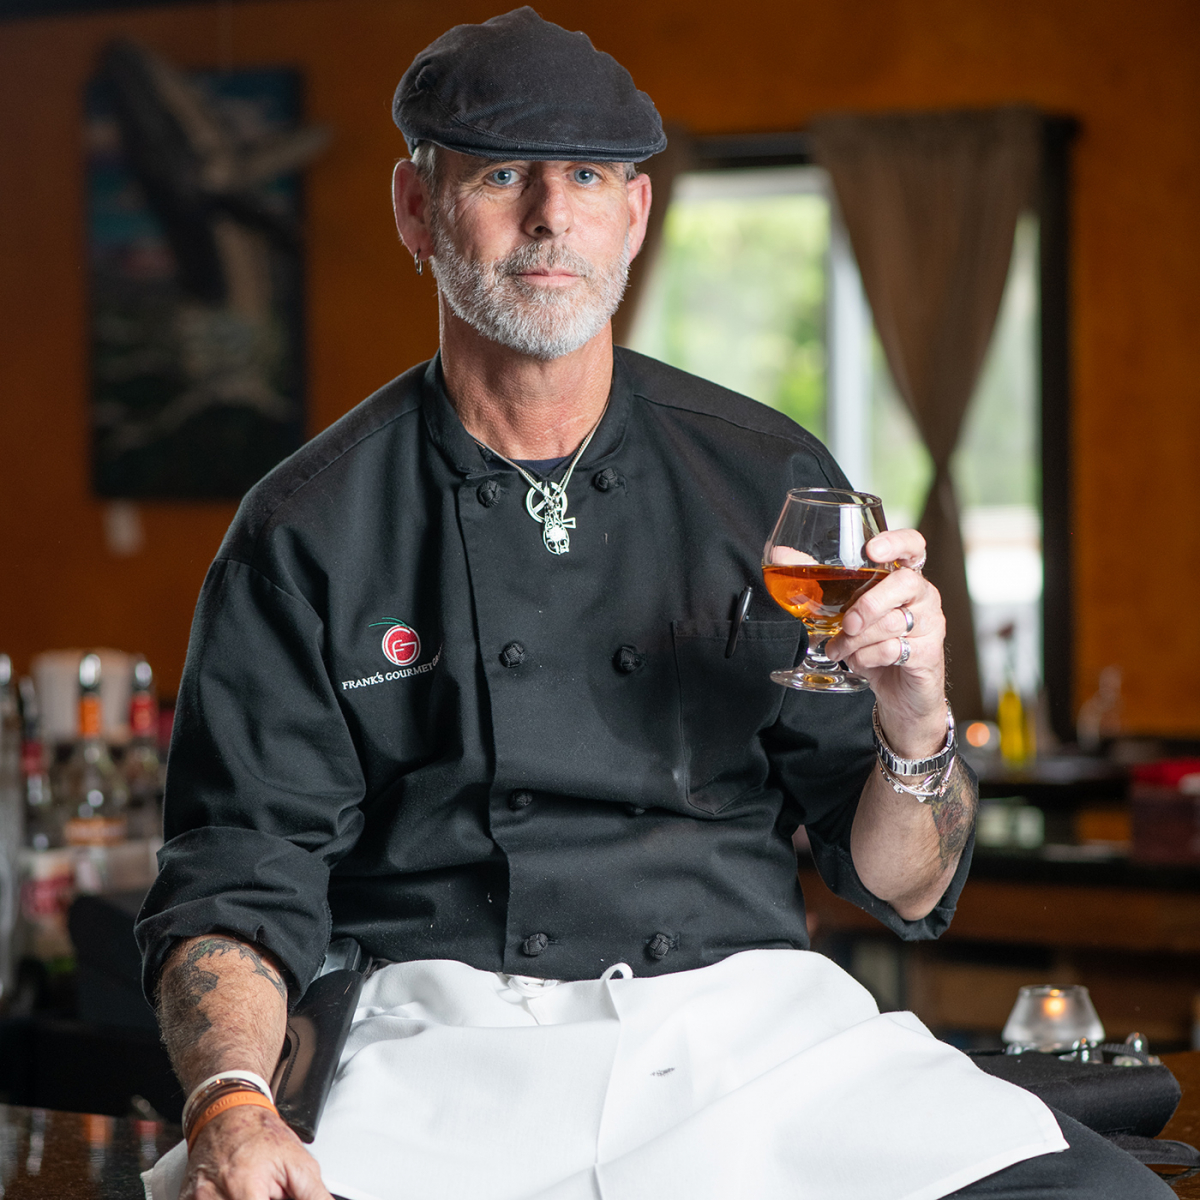 Chef Frank Grace of Frank's Gourmet Grille in Mystic, CT